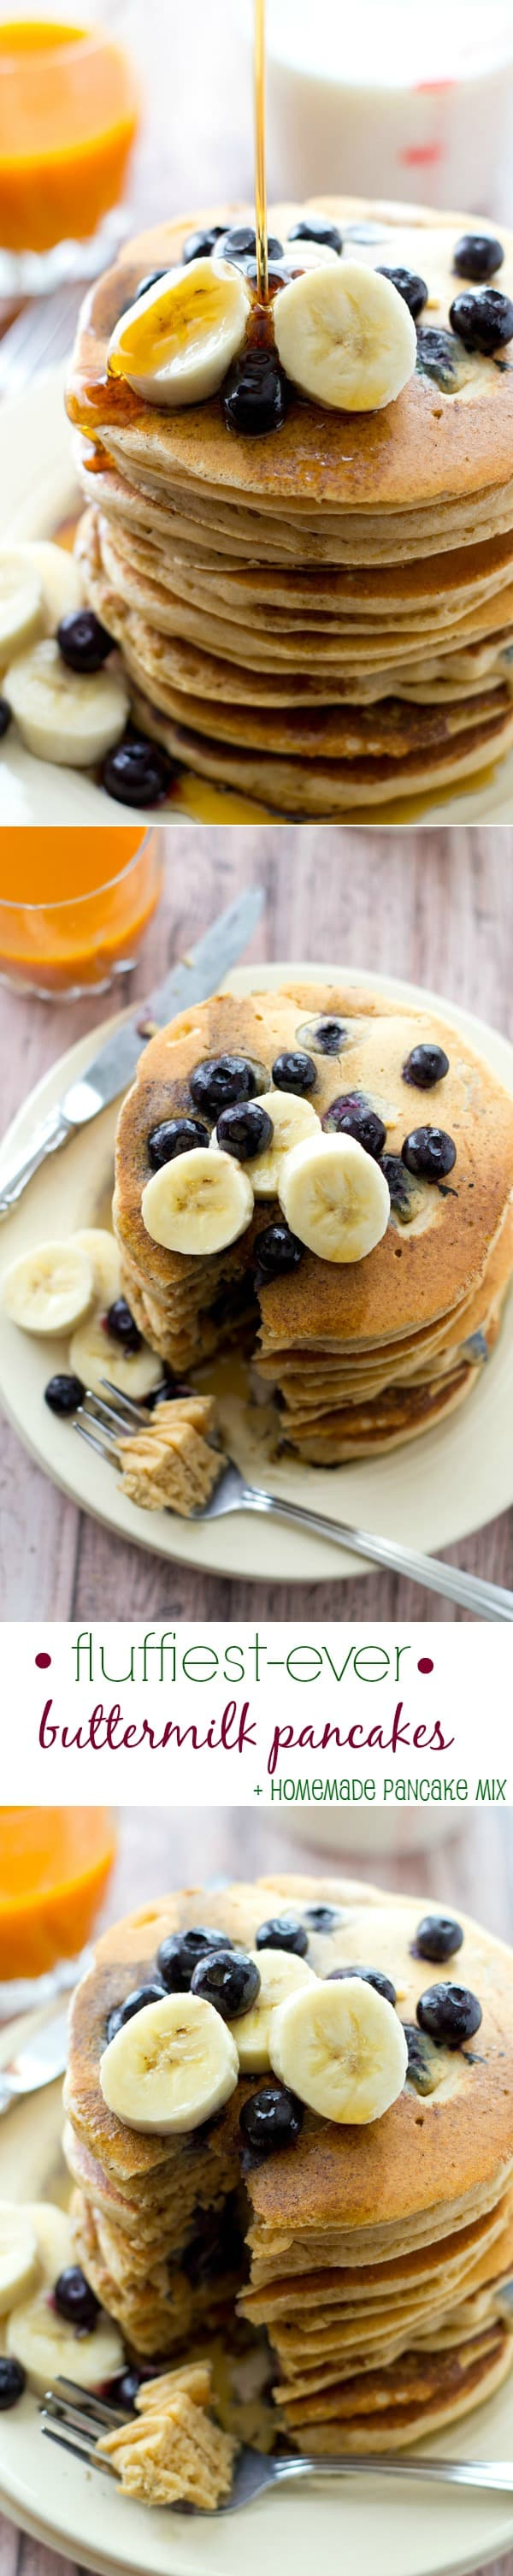 These simple buttermilk pancakes have an unbelievably fluffy texture and are perfect for Sunday brunch! PLUS make your own homemade pancake mix for the pantry! @WholeHeavenly